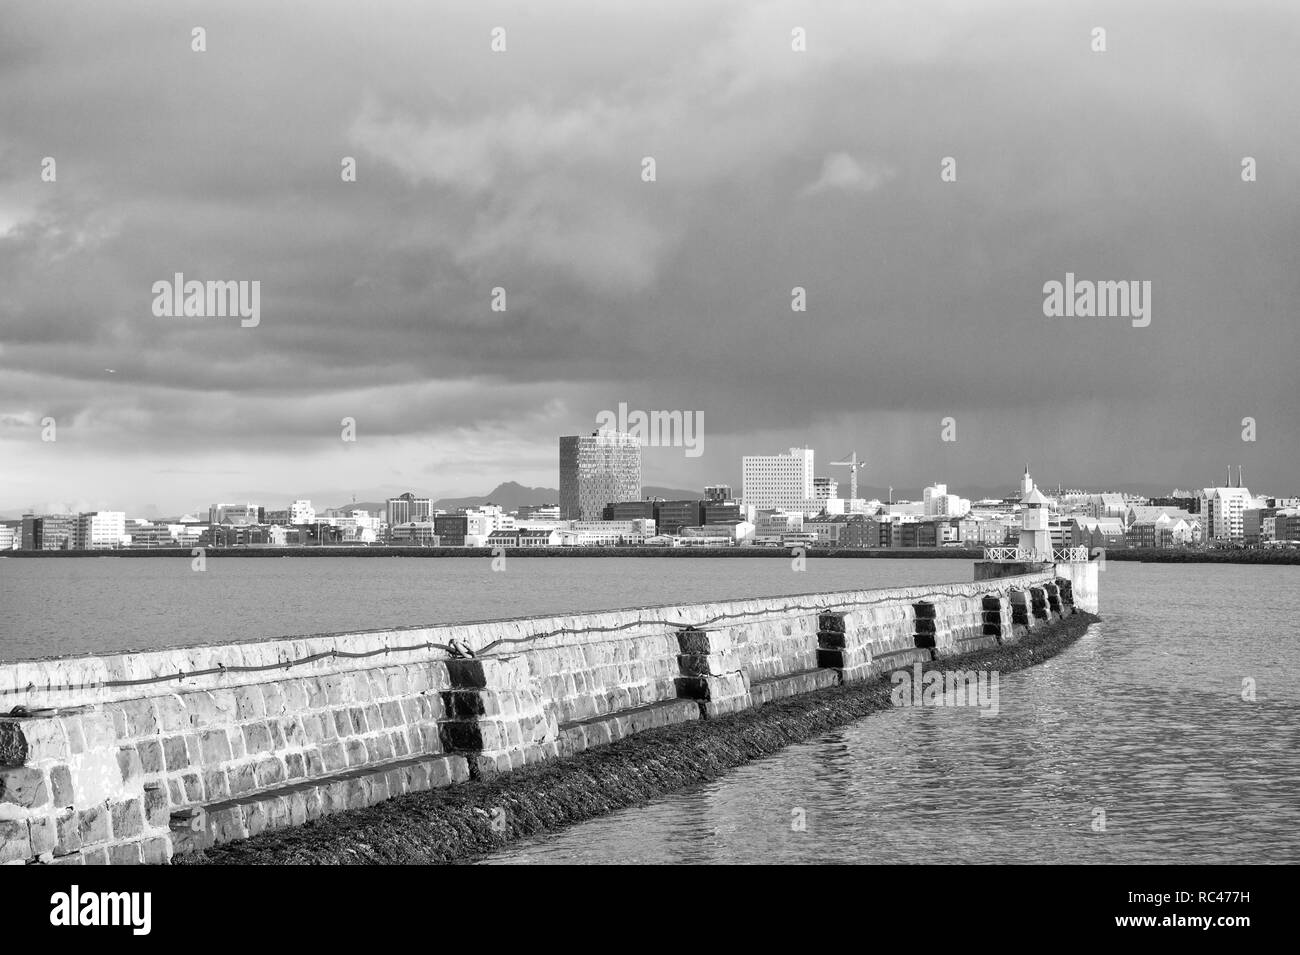 Lighthouse on sea pier in reykjavik iceland. Lighthouse yellow bright tower at sea shore. Seascape and skyline with bright lighthouse. Sea port navigation concept. Sea transportation and navigation. - Stock Image